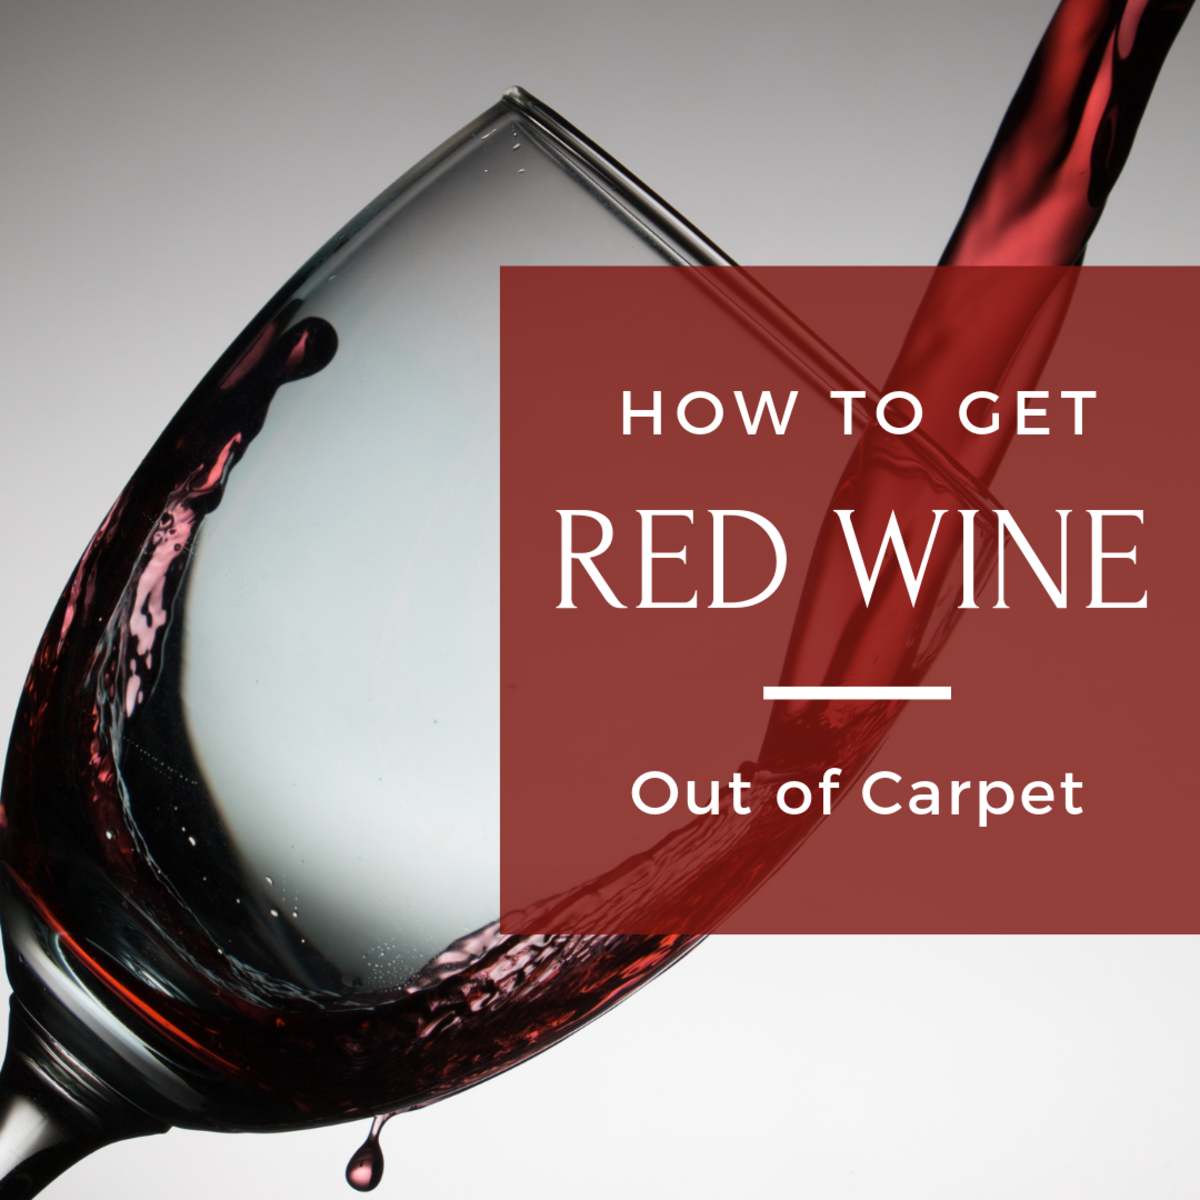 How to Clean Red Wine Stains Out of Carpet